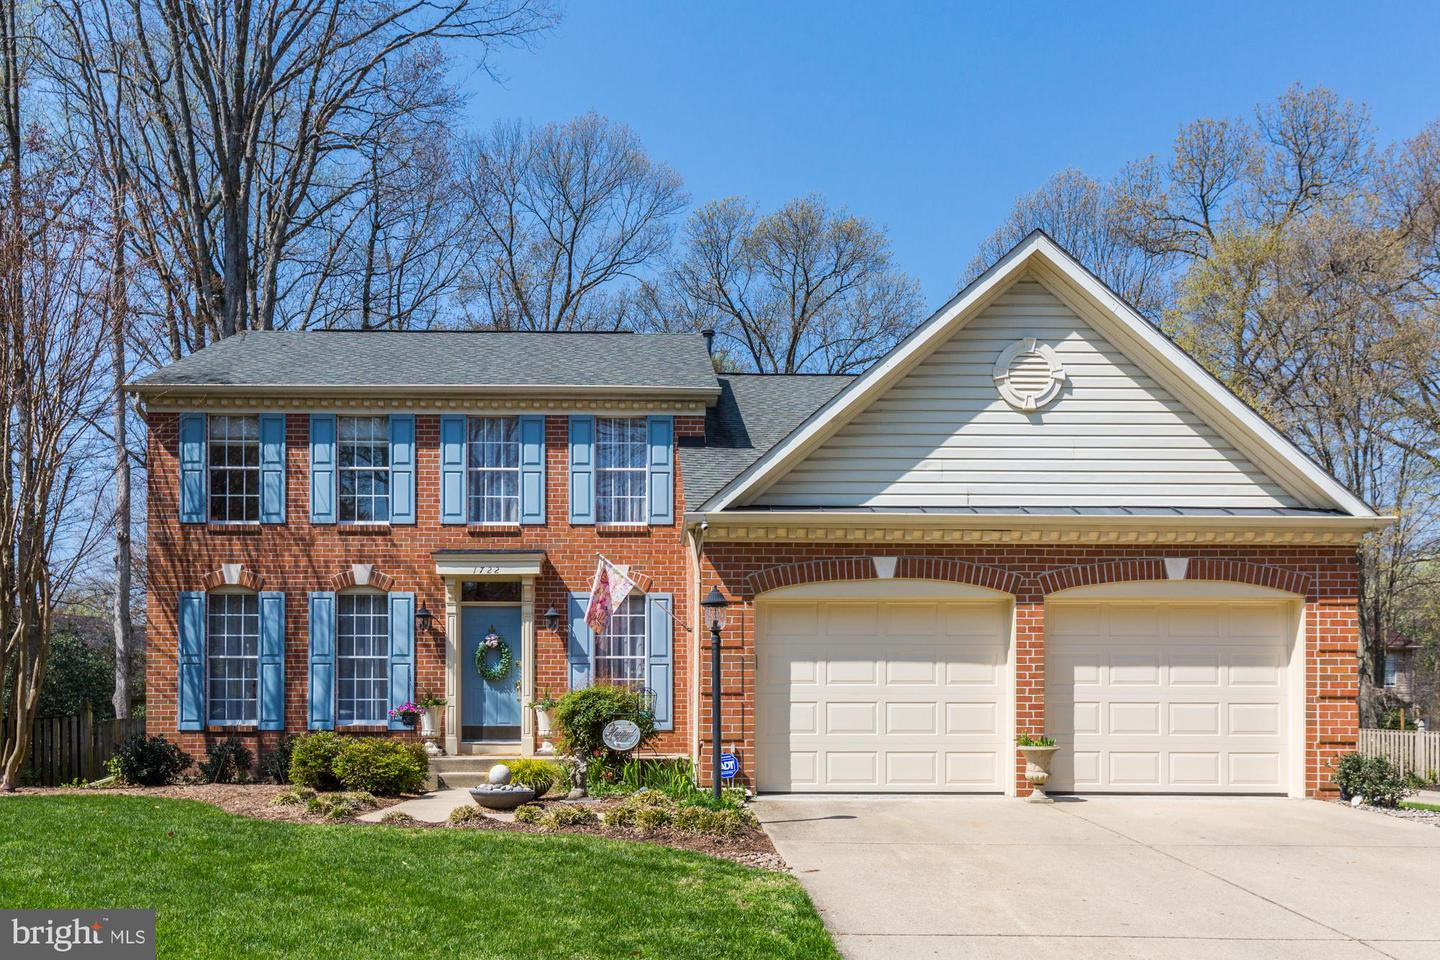 1722 GOOD HOPE DR, CROFTON, Maryland 21114, 5 Bedrooms Bedrooms, ,4 BathroomsBathrooms,Single Family,For Sale,1722 GOOD HOPE DR,MDAA462550